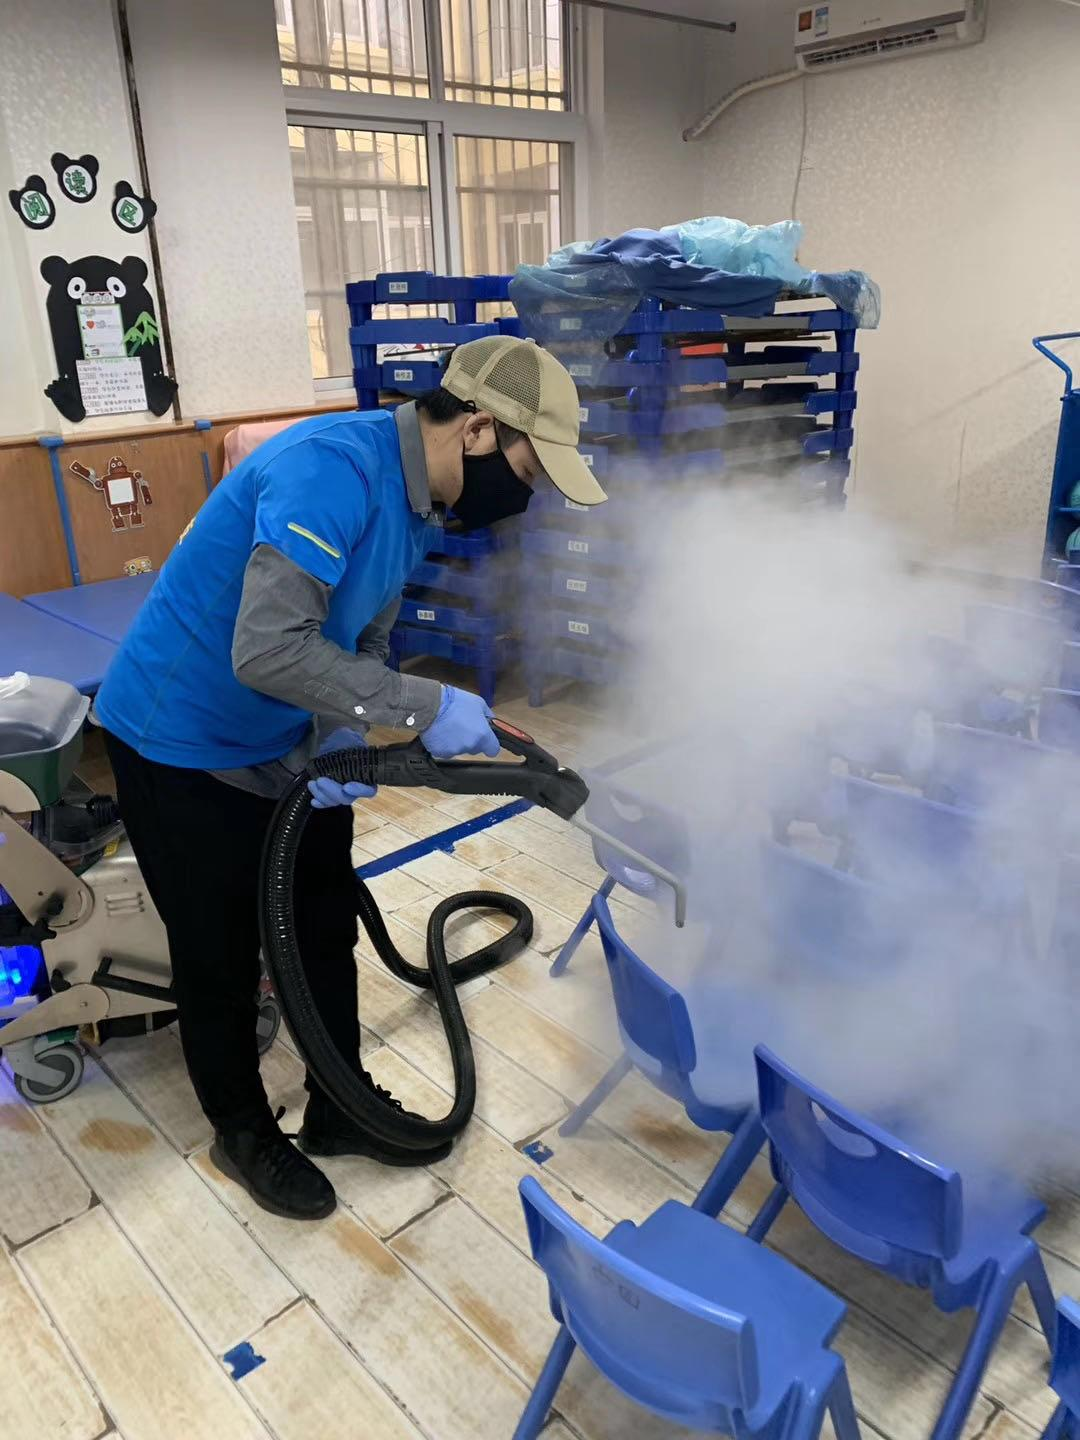 Chair decontamination Corona Virus COVIS-19 Wuhan China by Blue Evolution Drysteam